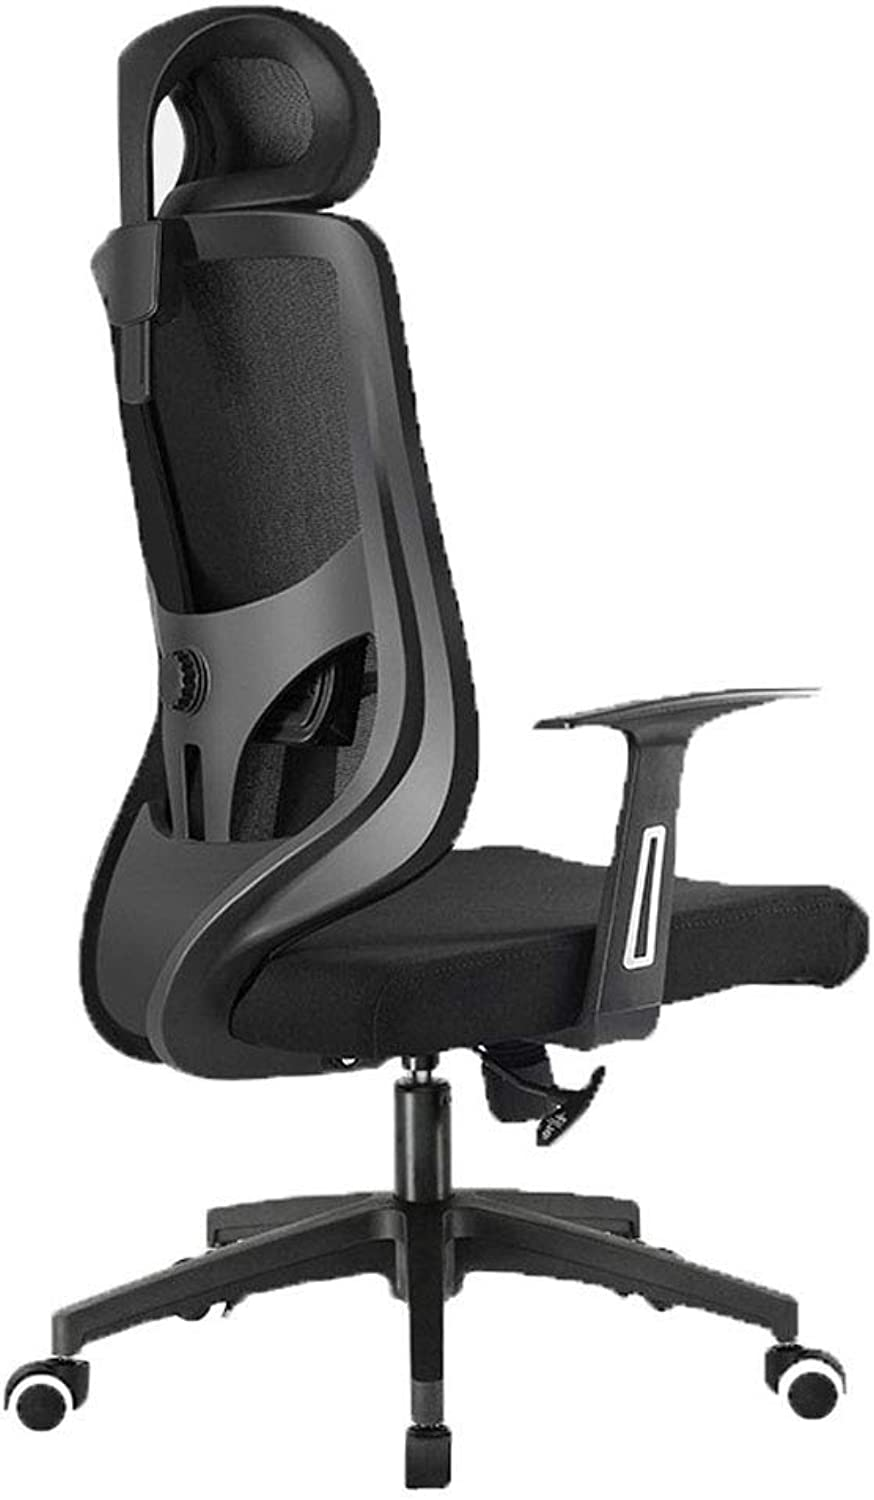 Computer Chair Home Swivel Chair Lifting Reclining Boss Chair Modern Simple Office Chair Game Chair Study Back Chair